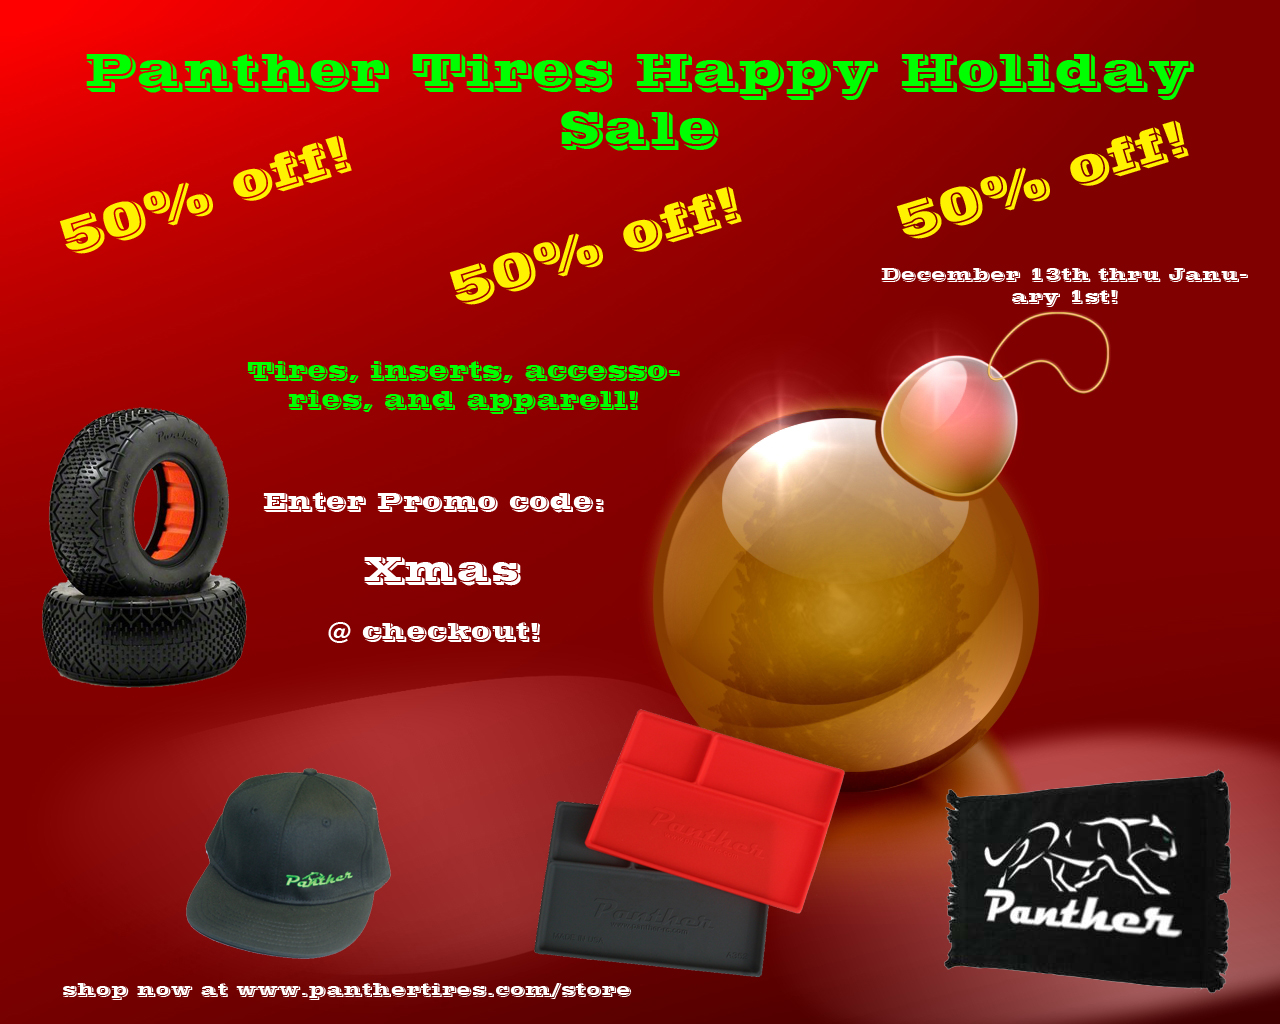 Panther Tires Holiday Sale